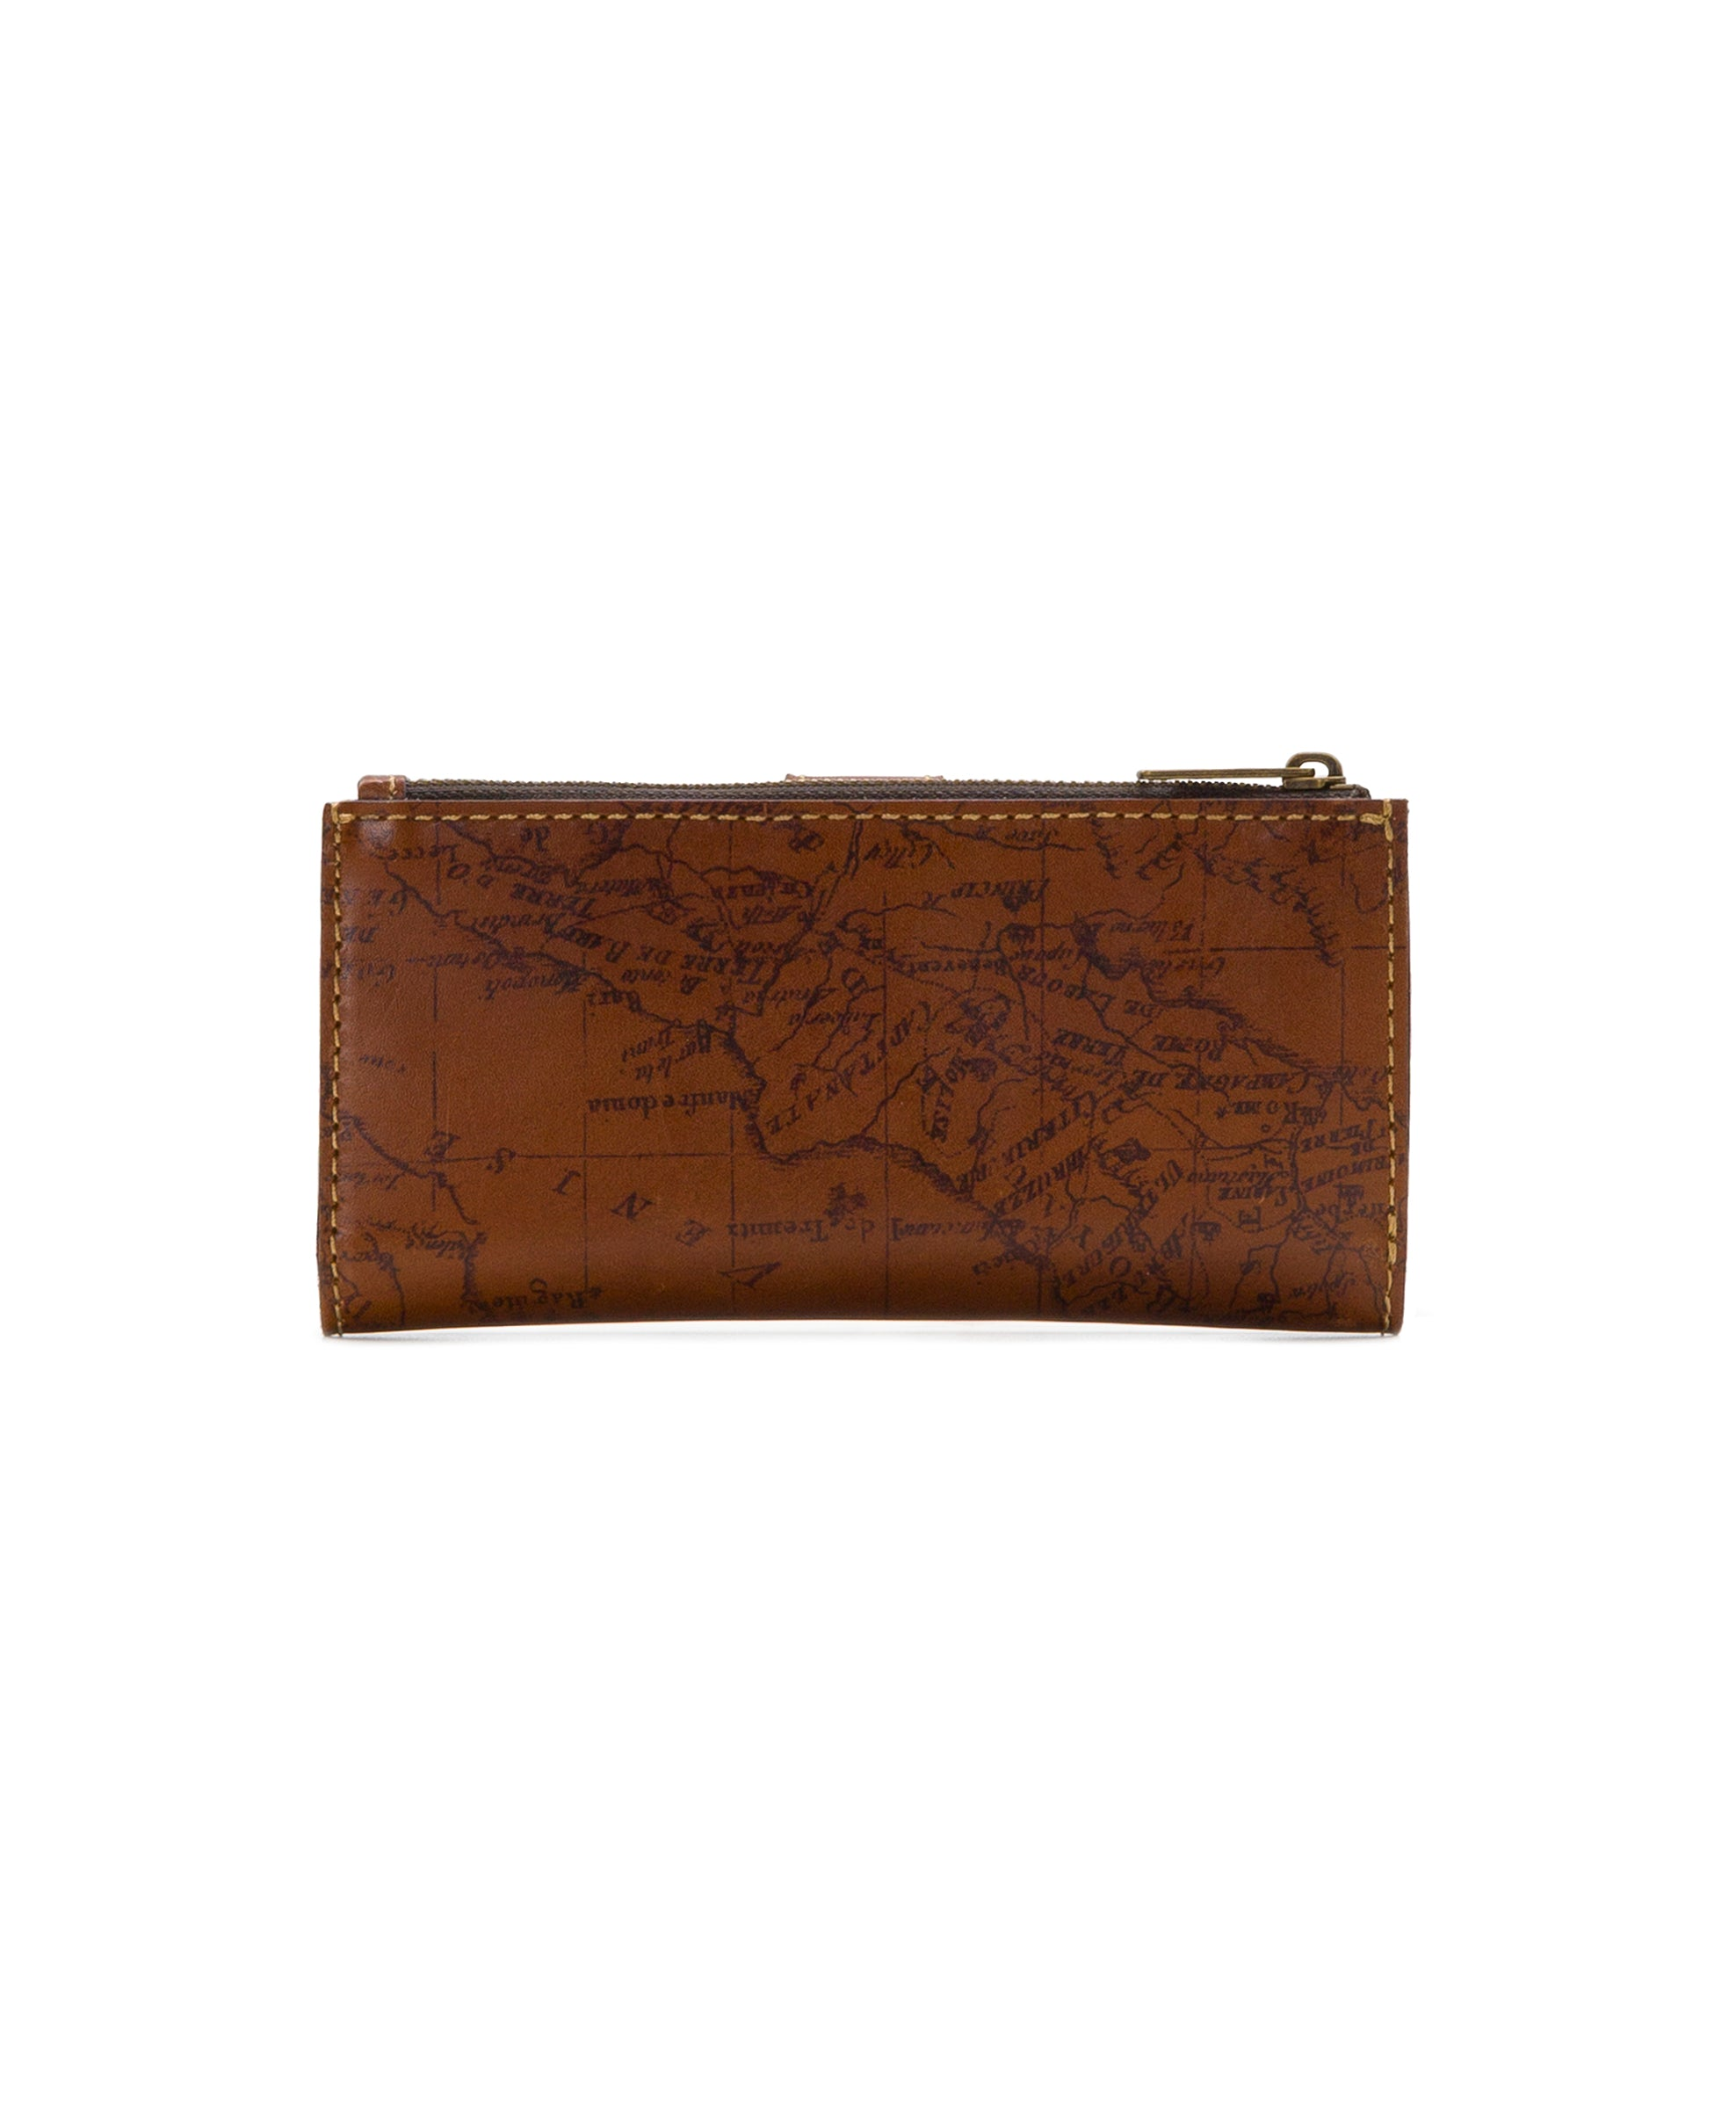 Nazari Bifold Wallet - Signature Map 2